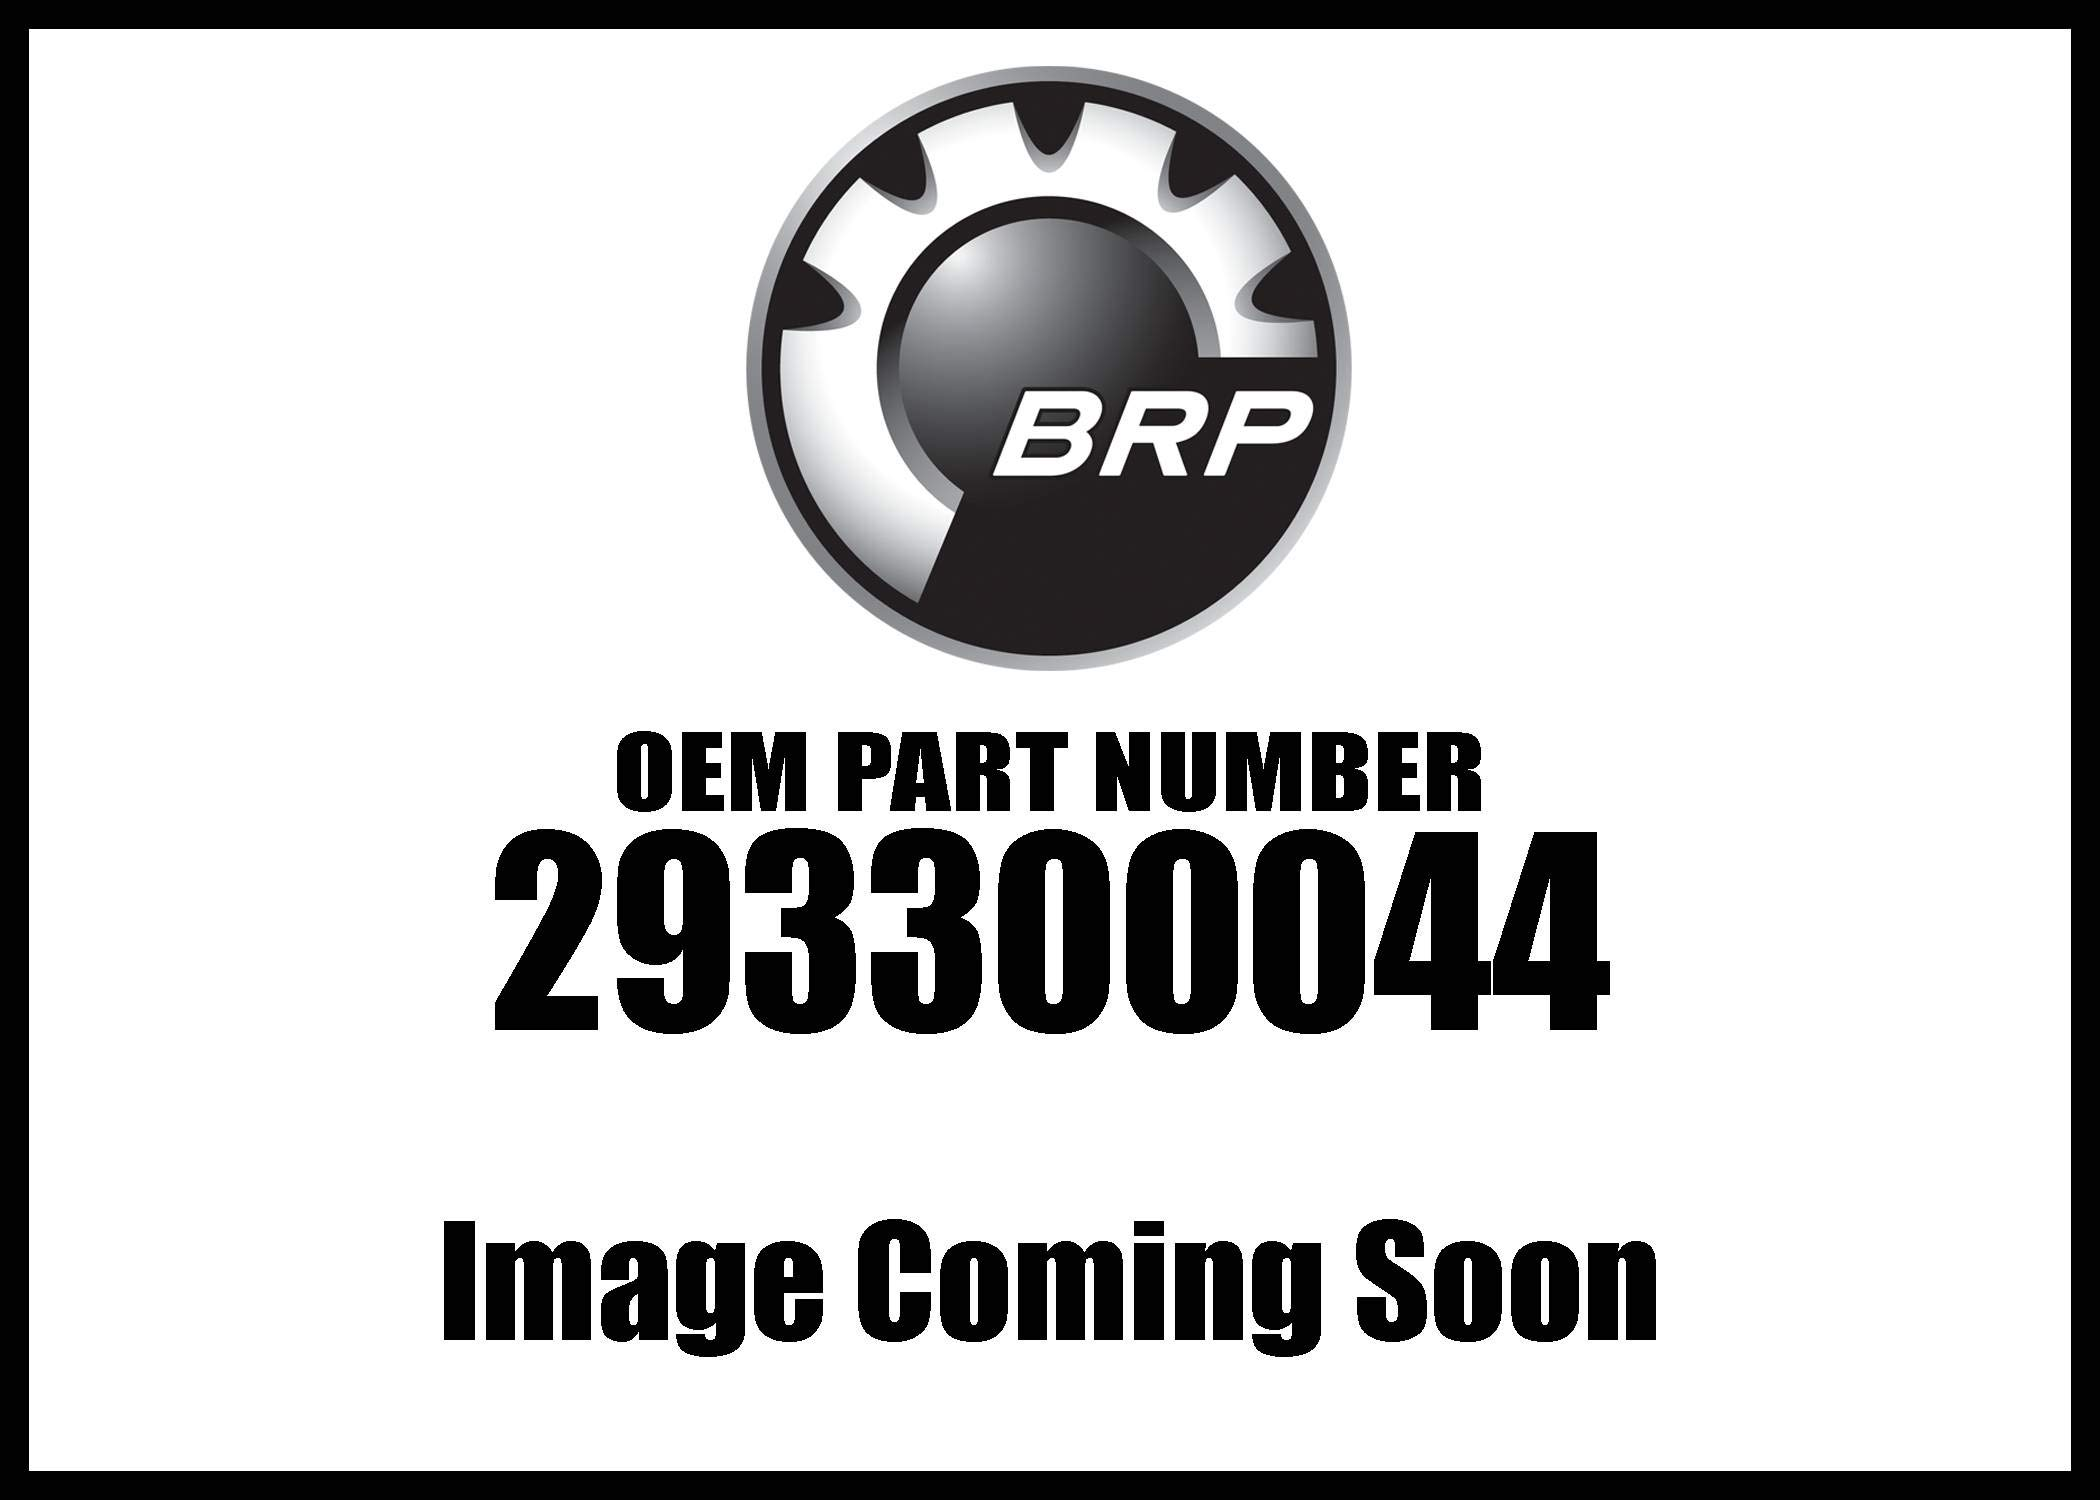 Sea-Doo 1997-2018 Wake 155 Rxp 1503 Na O Ring 293300044 New Oem